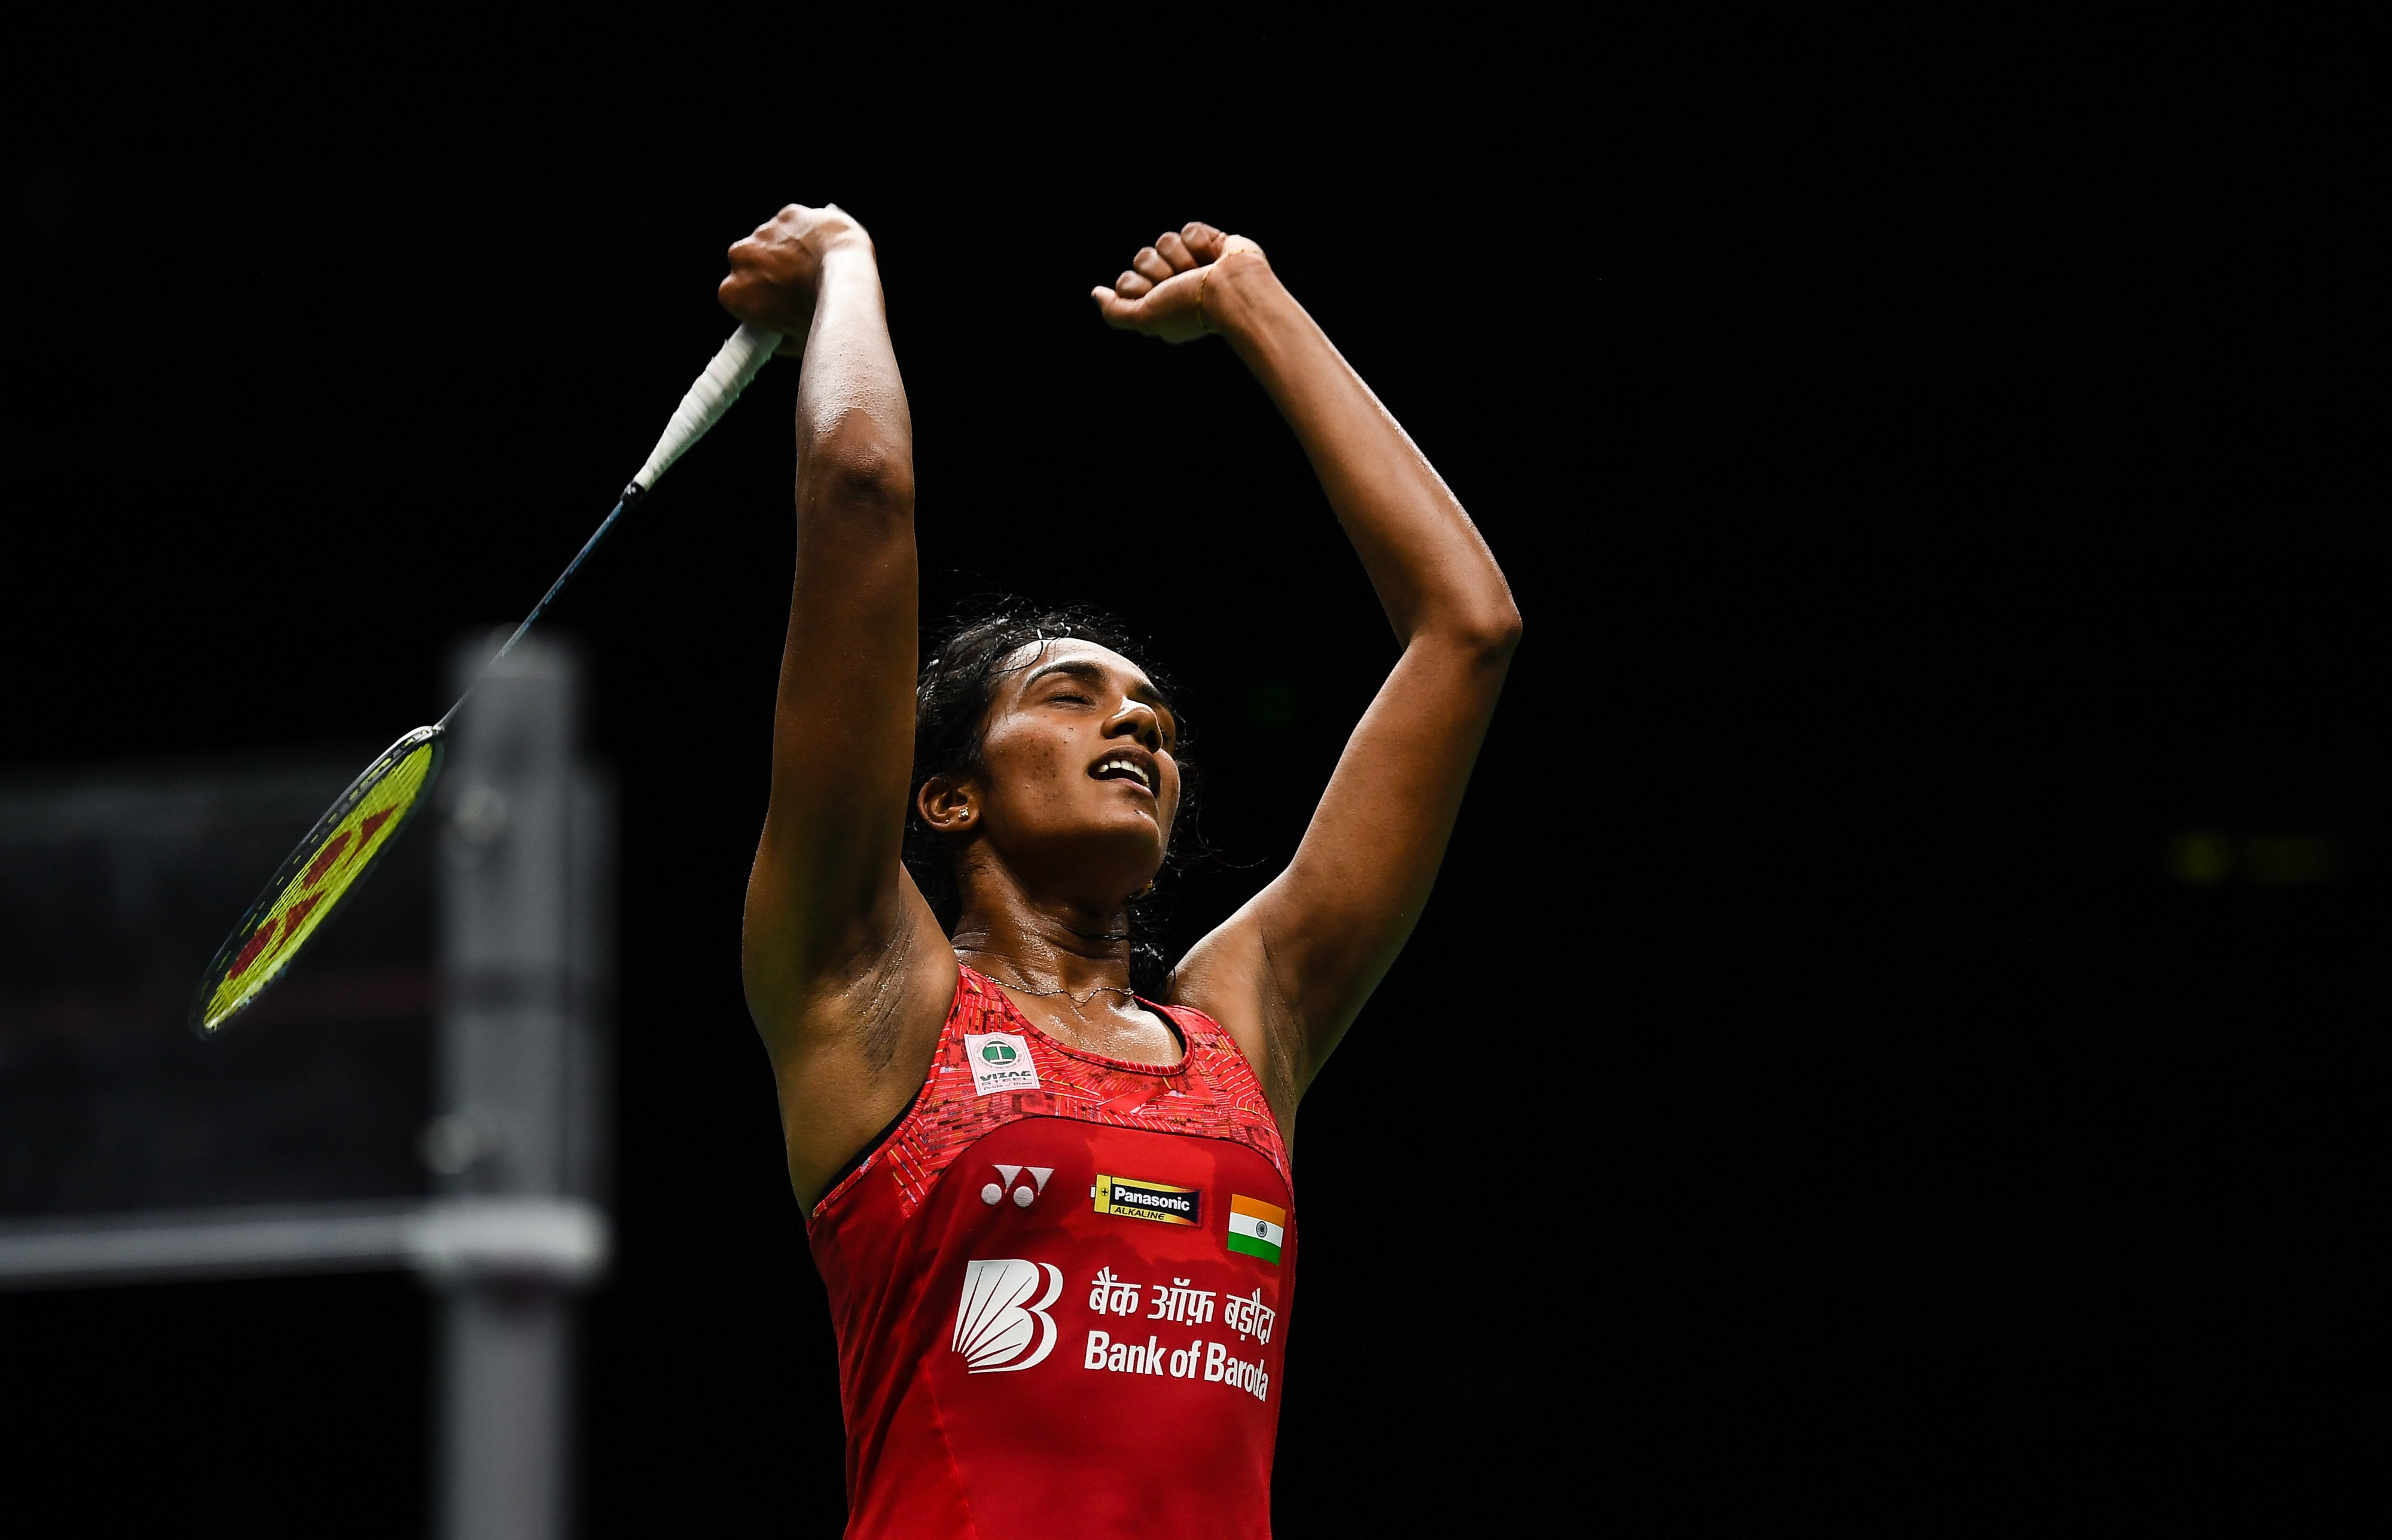 PV Sindhu at Asian Games 2018